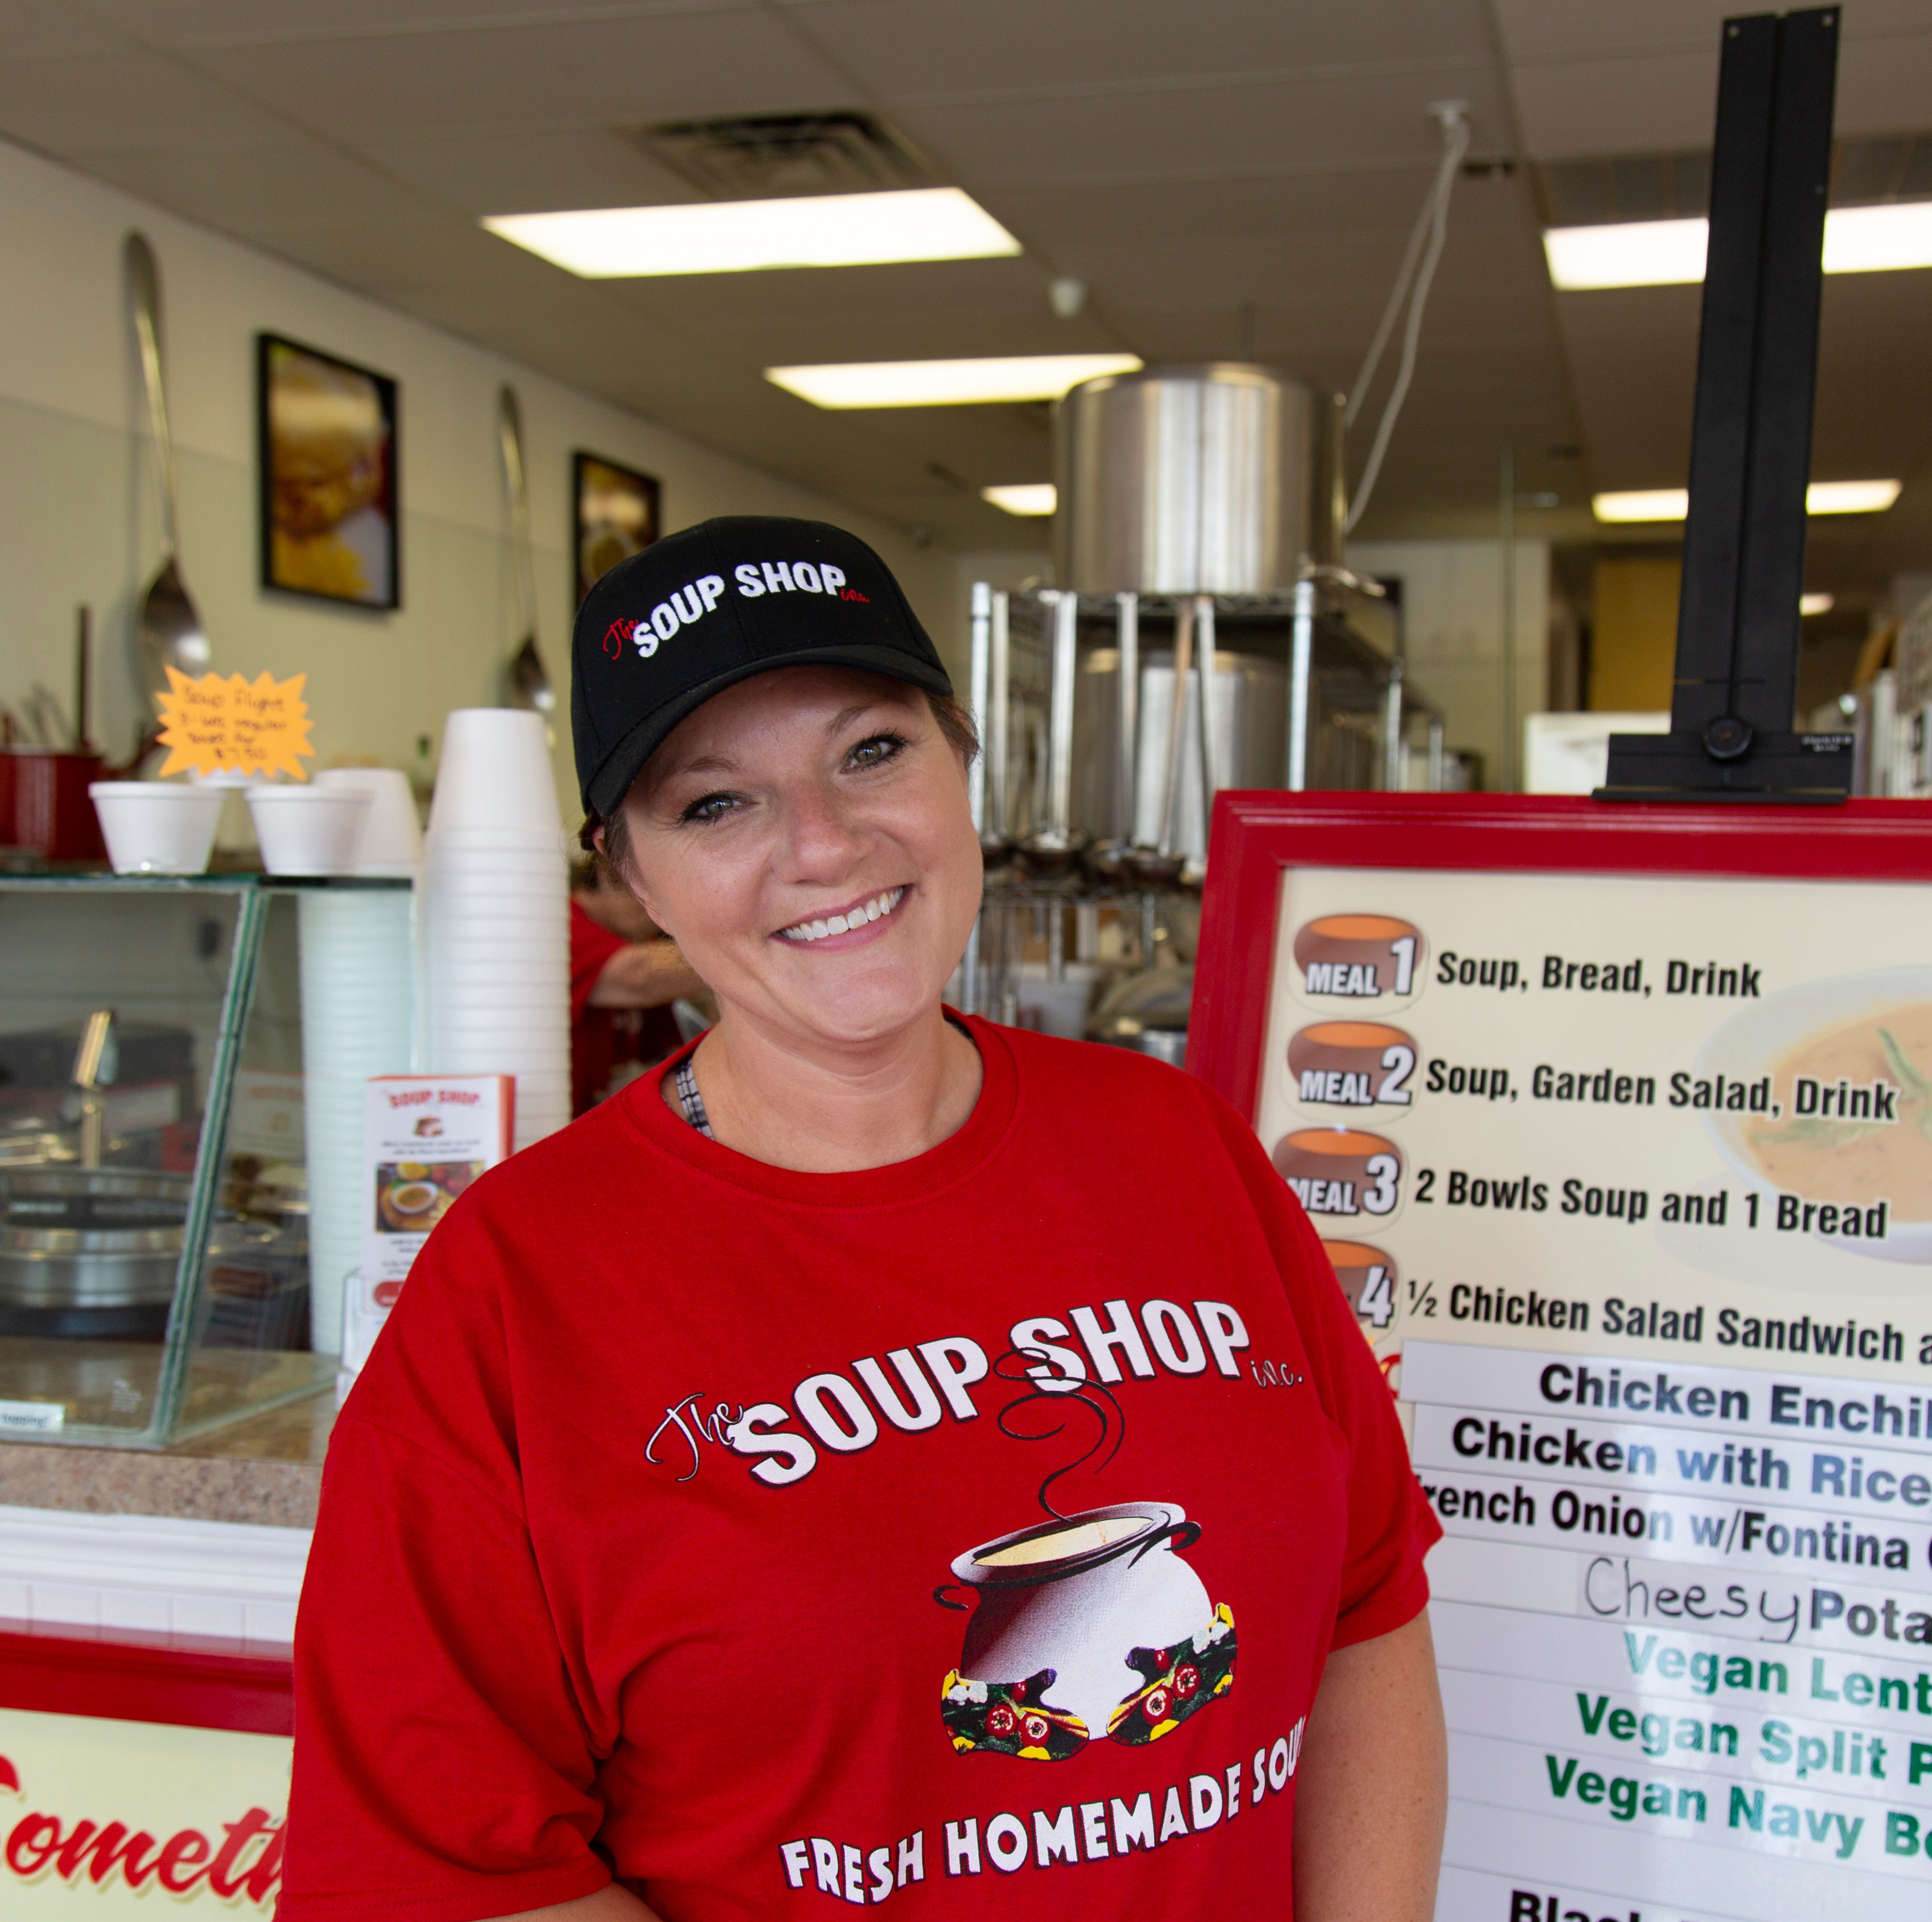 Monica Anderson, 40, started working at The Soup Shop after her husband, Adam Anderson, was one of the furloughed workers affected by the government shutdown.